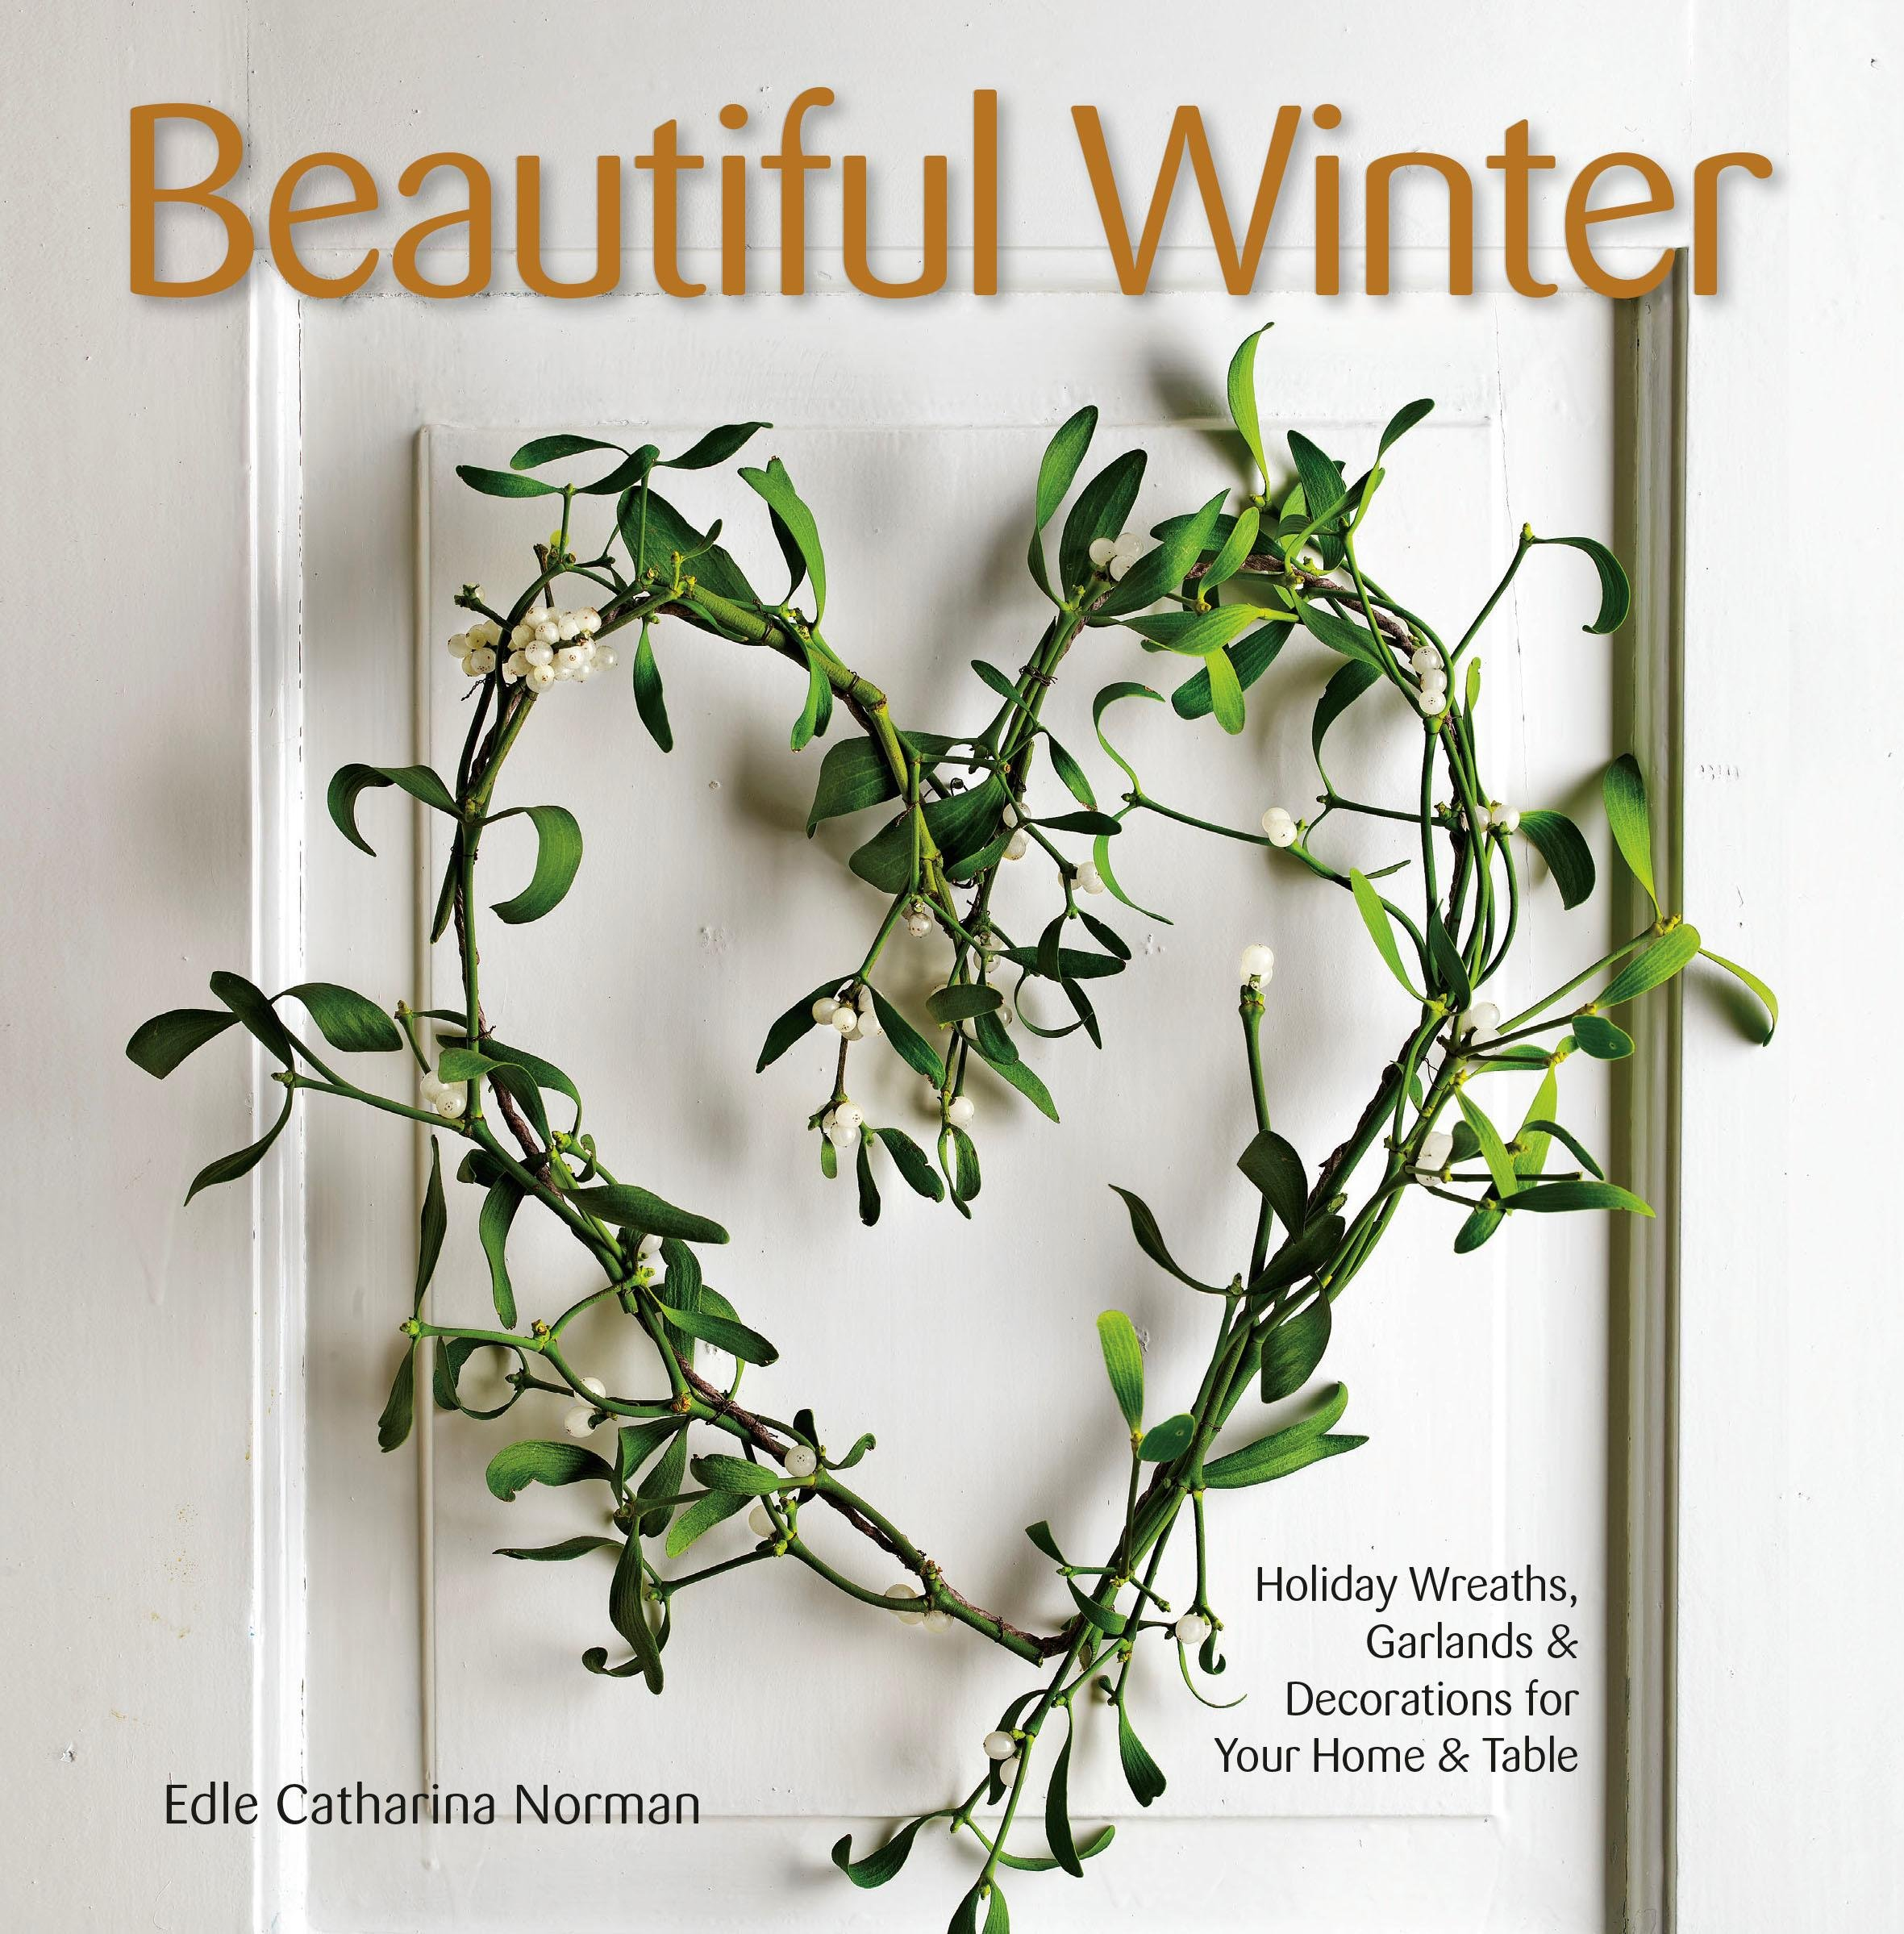 Beautiful Winter Holiday Wreaths Garlands Decorations For Your Home Table Edle Catharina Norman 9781416208471 Amazon Books